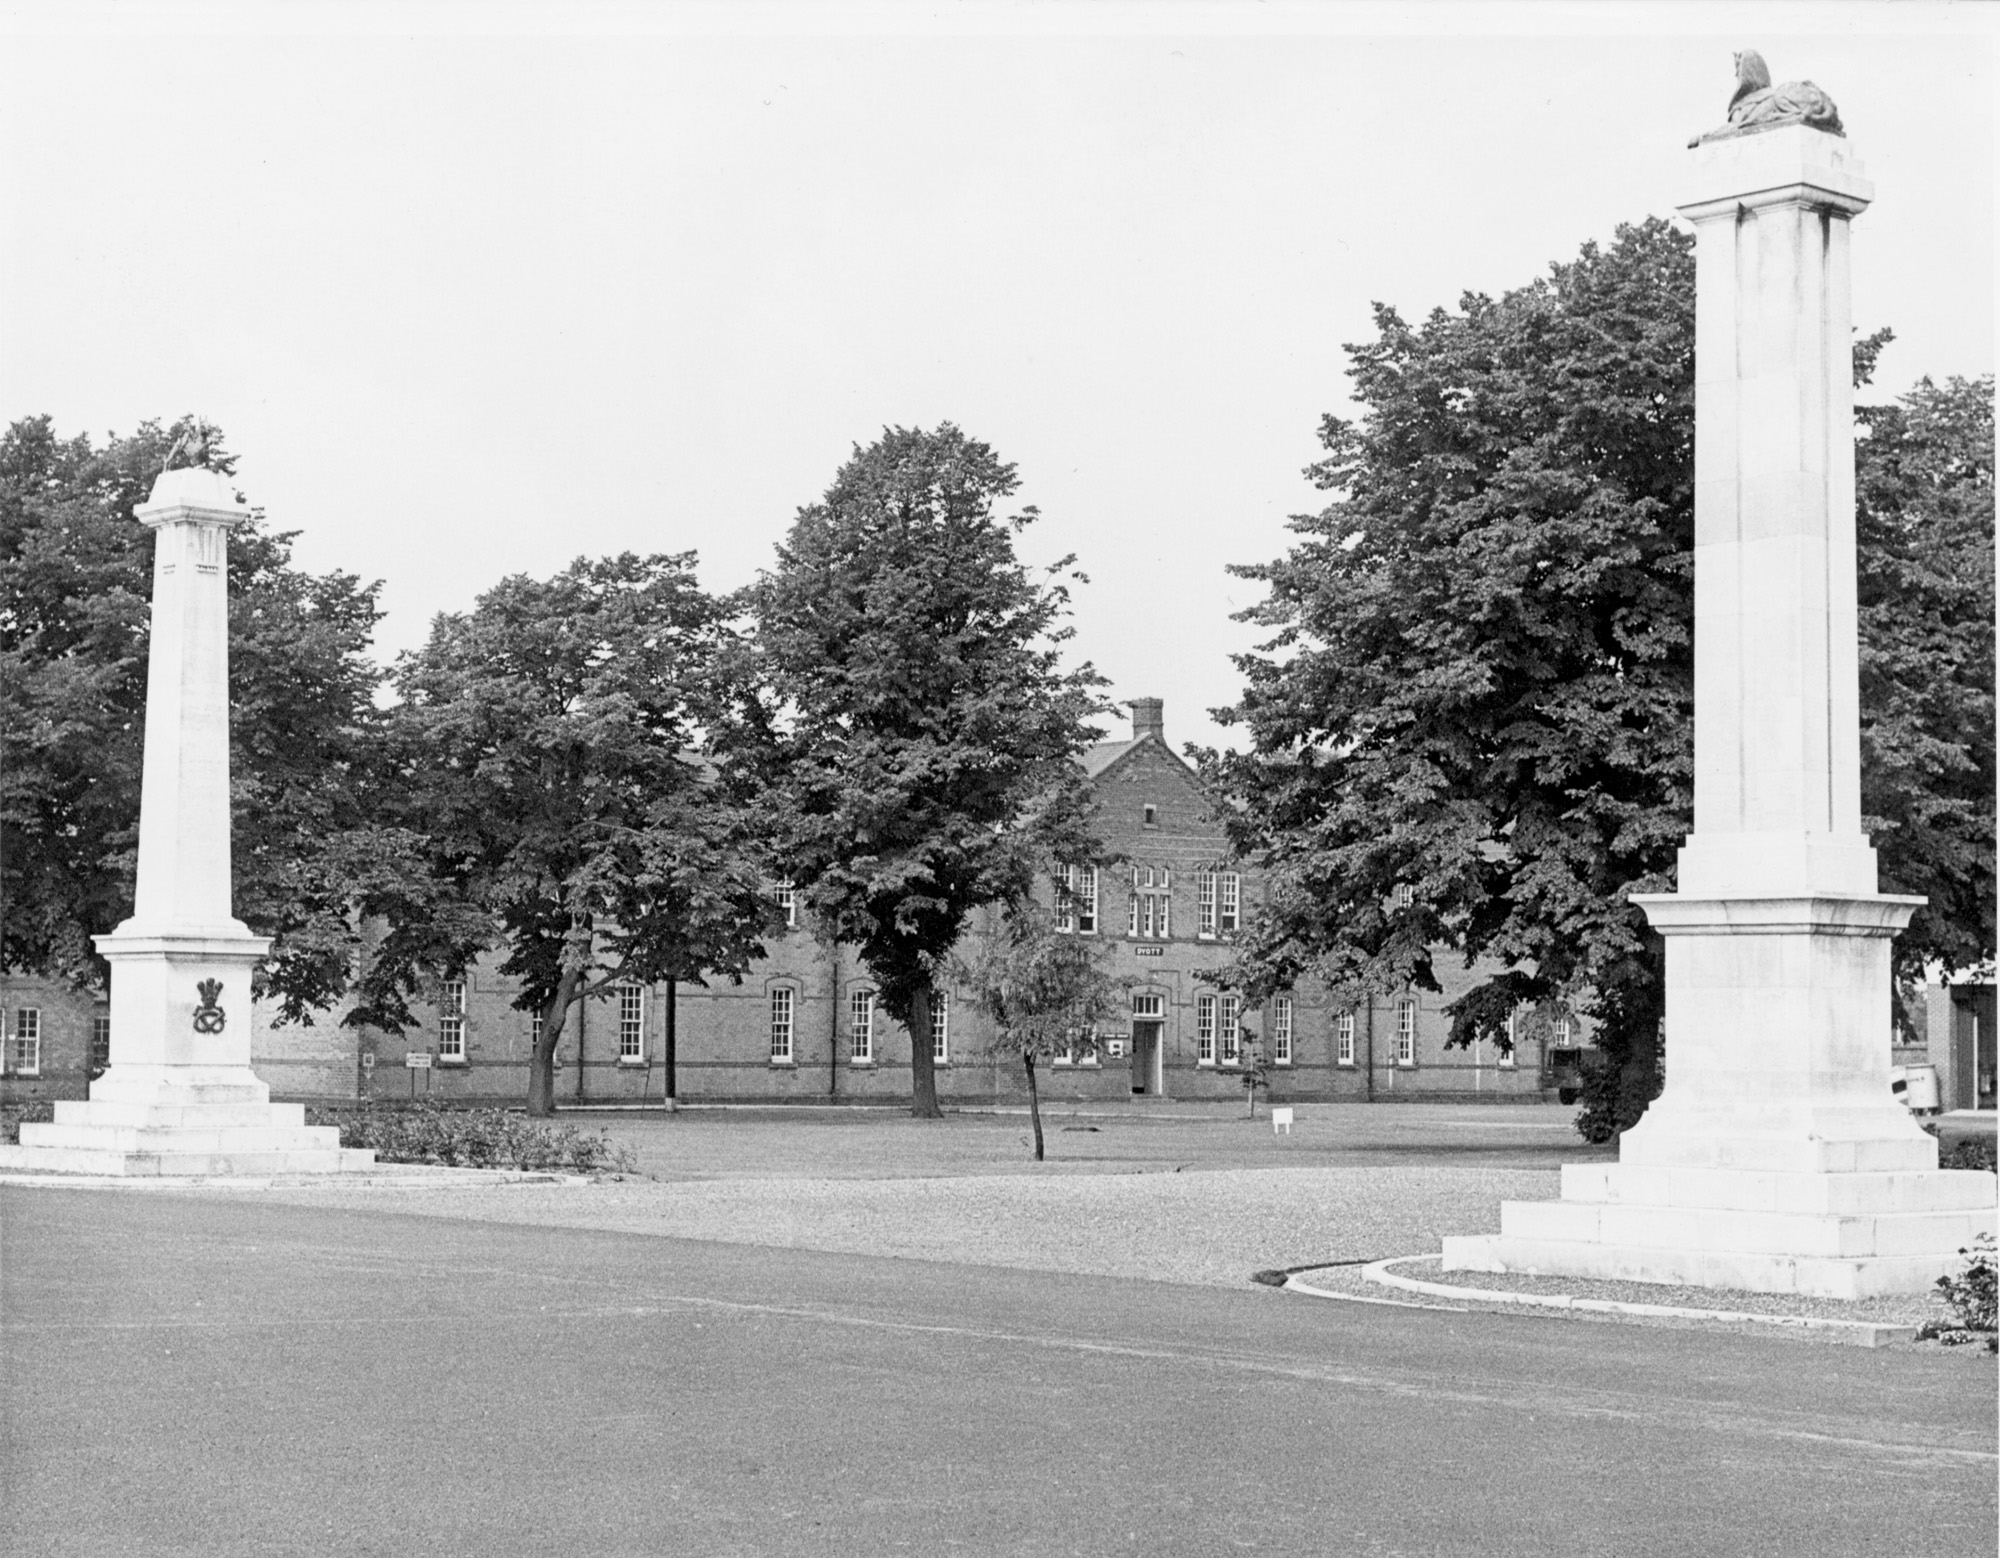 Photograph of the two regimental war memorials, the North Staffs on the left, the South Staffs on the right.